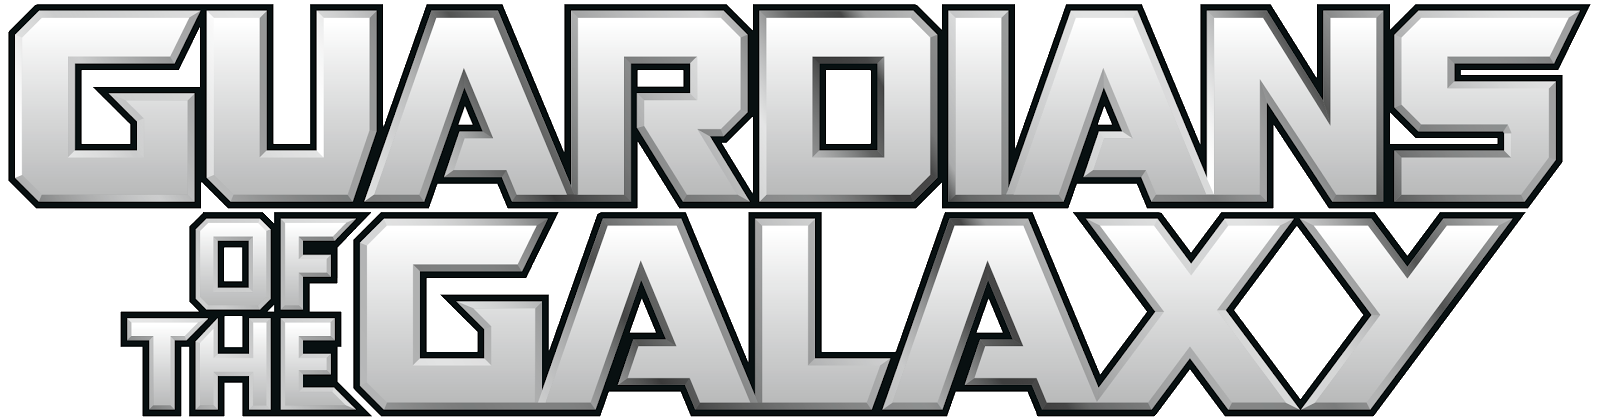 Galaxy clipart teal. Guardians of the logo